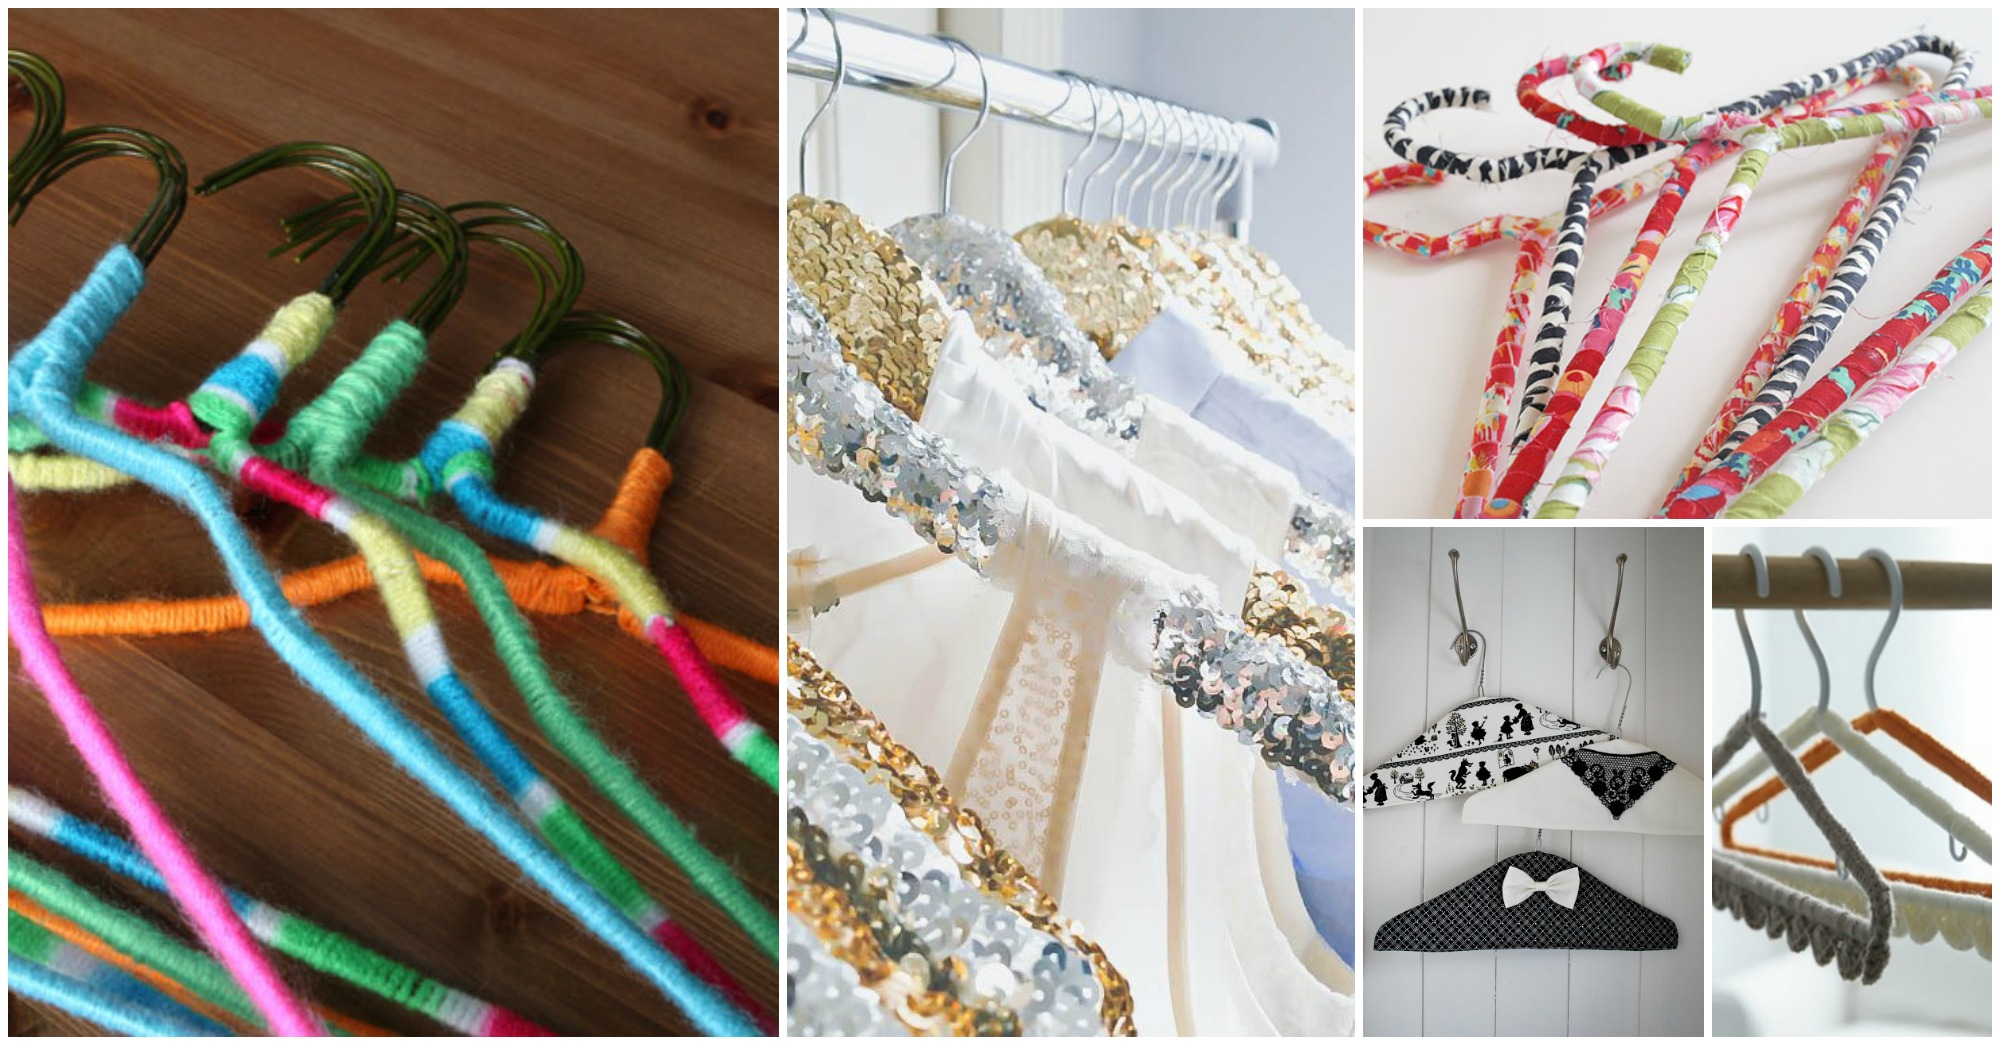 13 Lovely DIY Hanger Ideas That Will Impress You